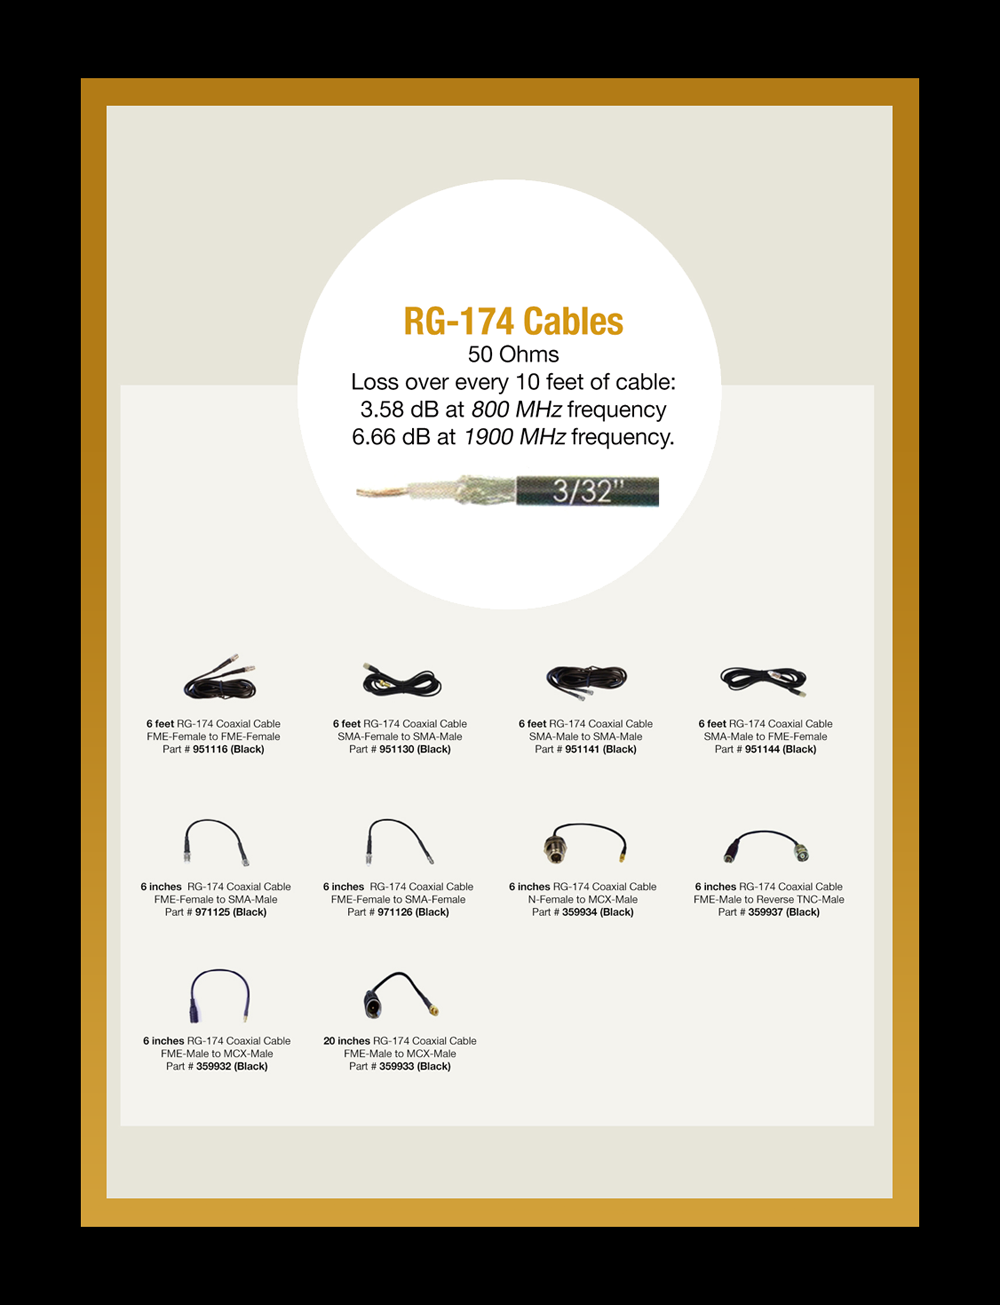 RG174 Coax Cable: All you need to know about RG-174 Coaxial Cables.